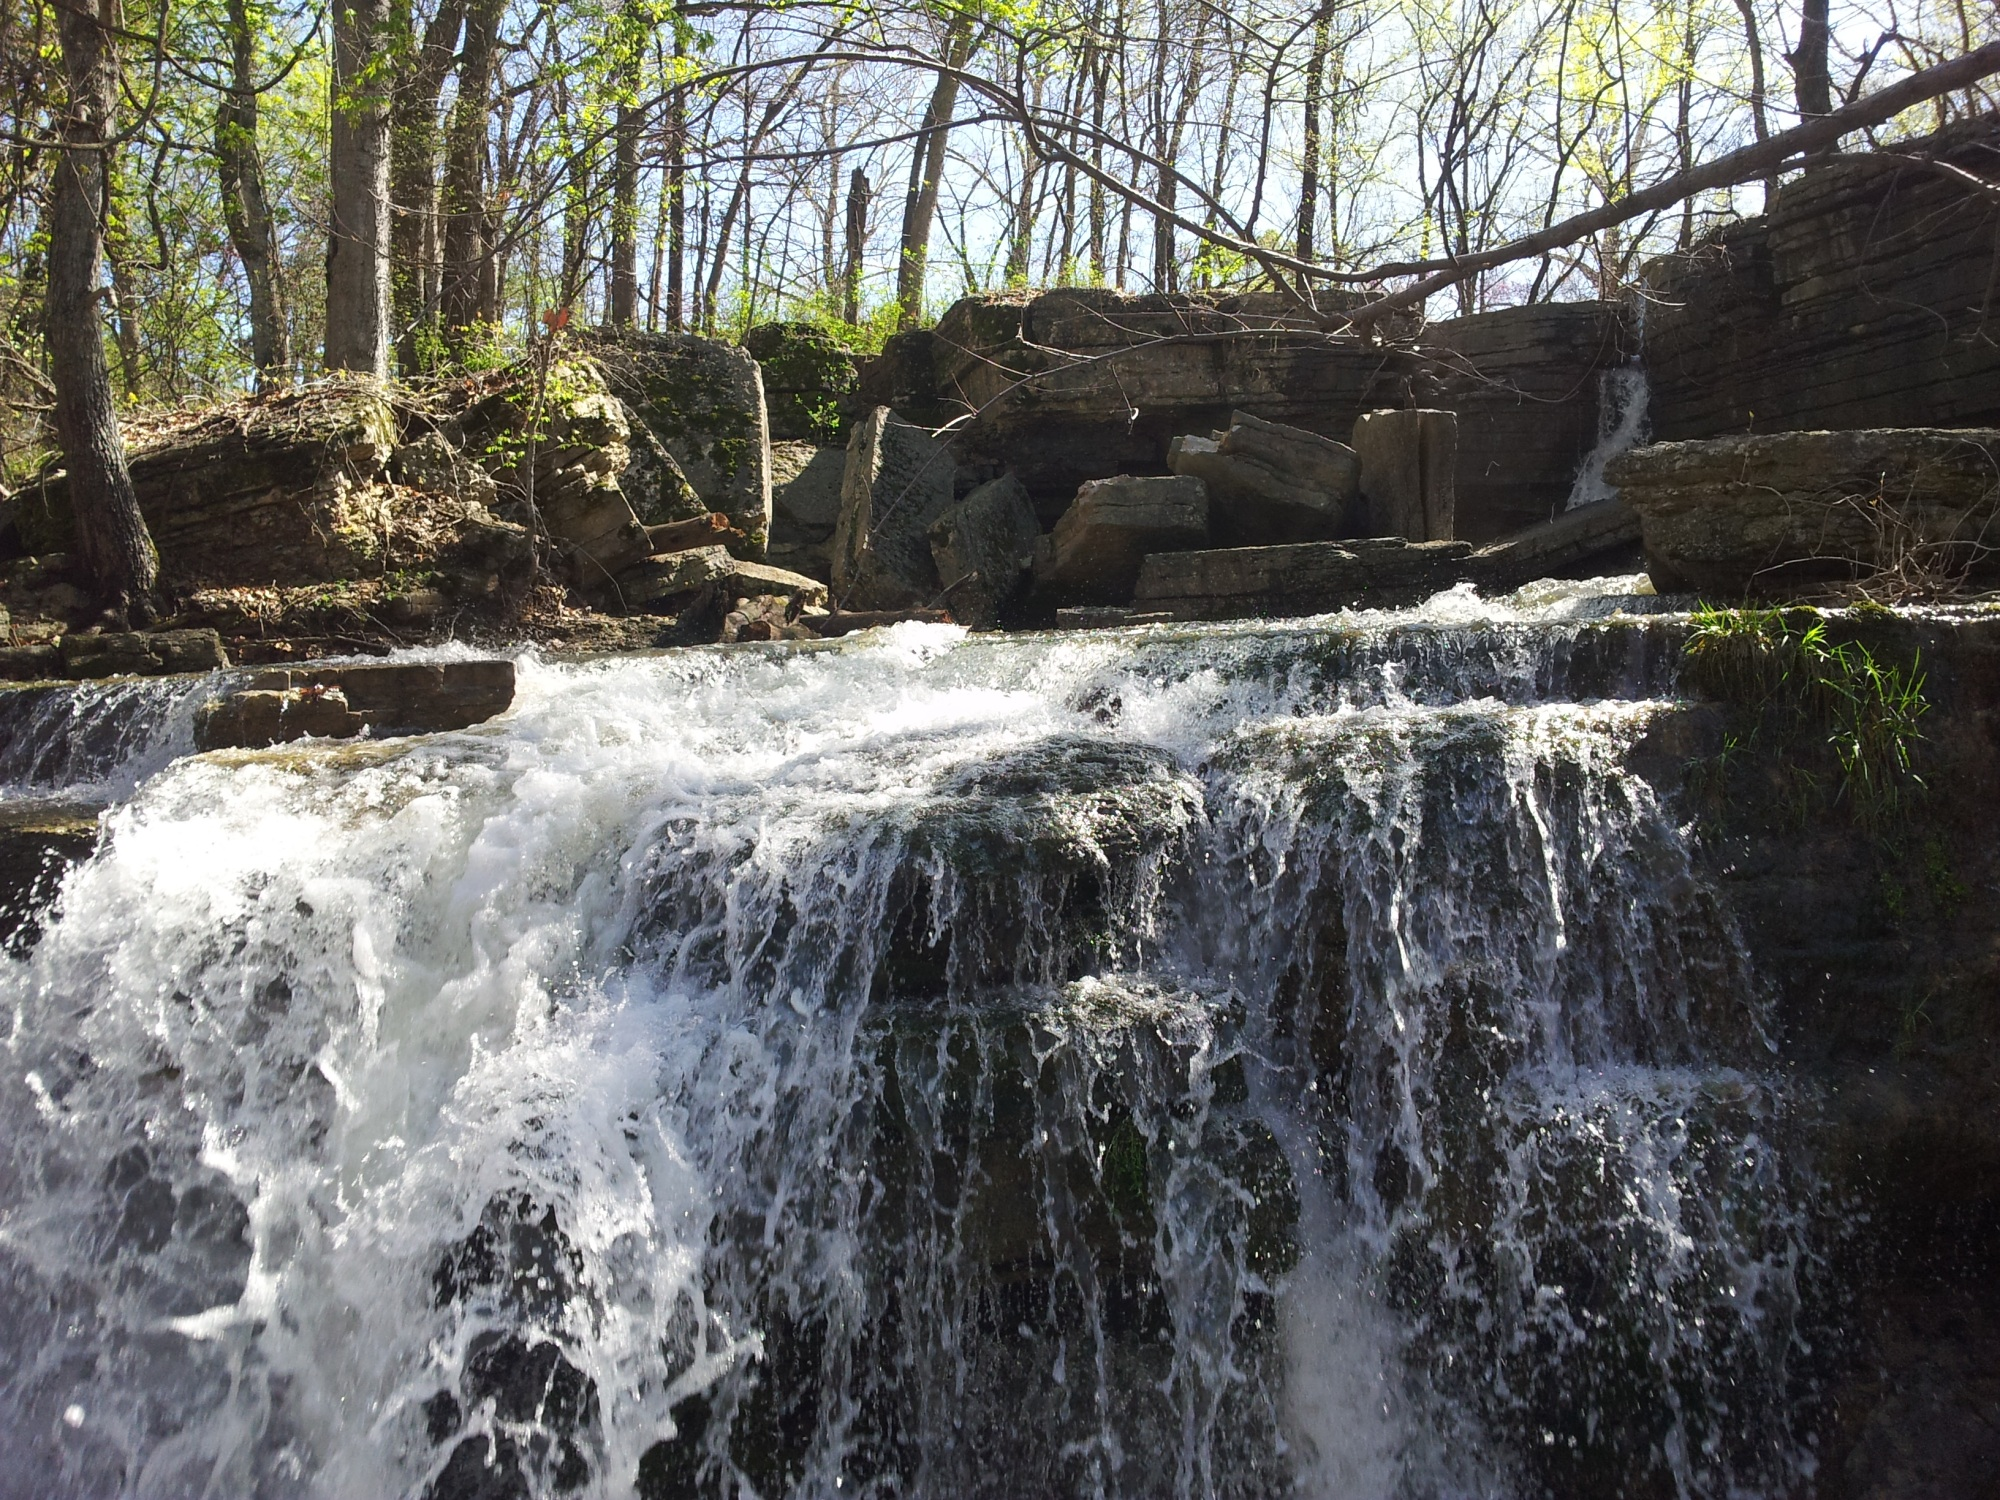 Waterfall at Crystal Lake (Decatur)